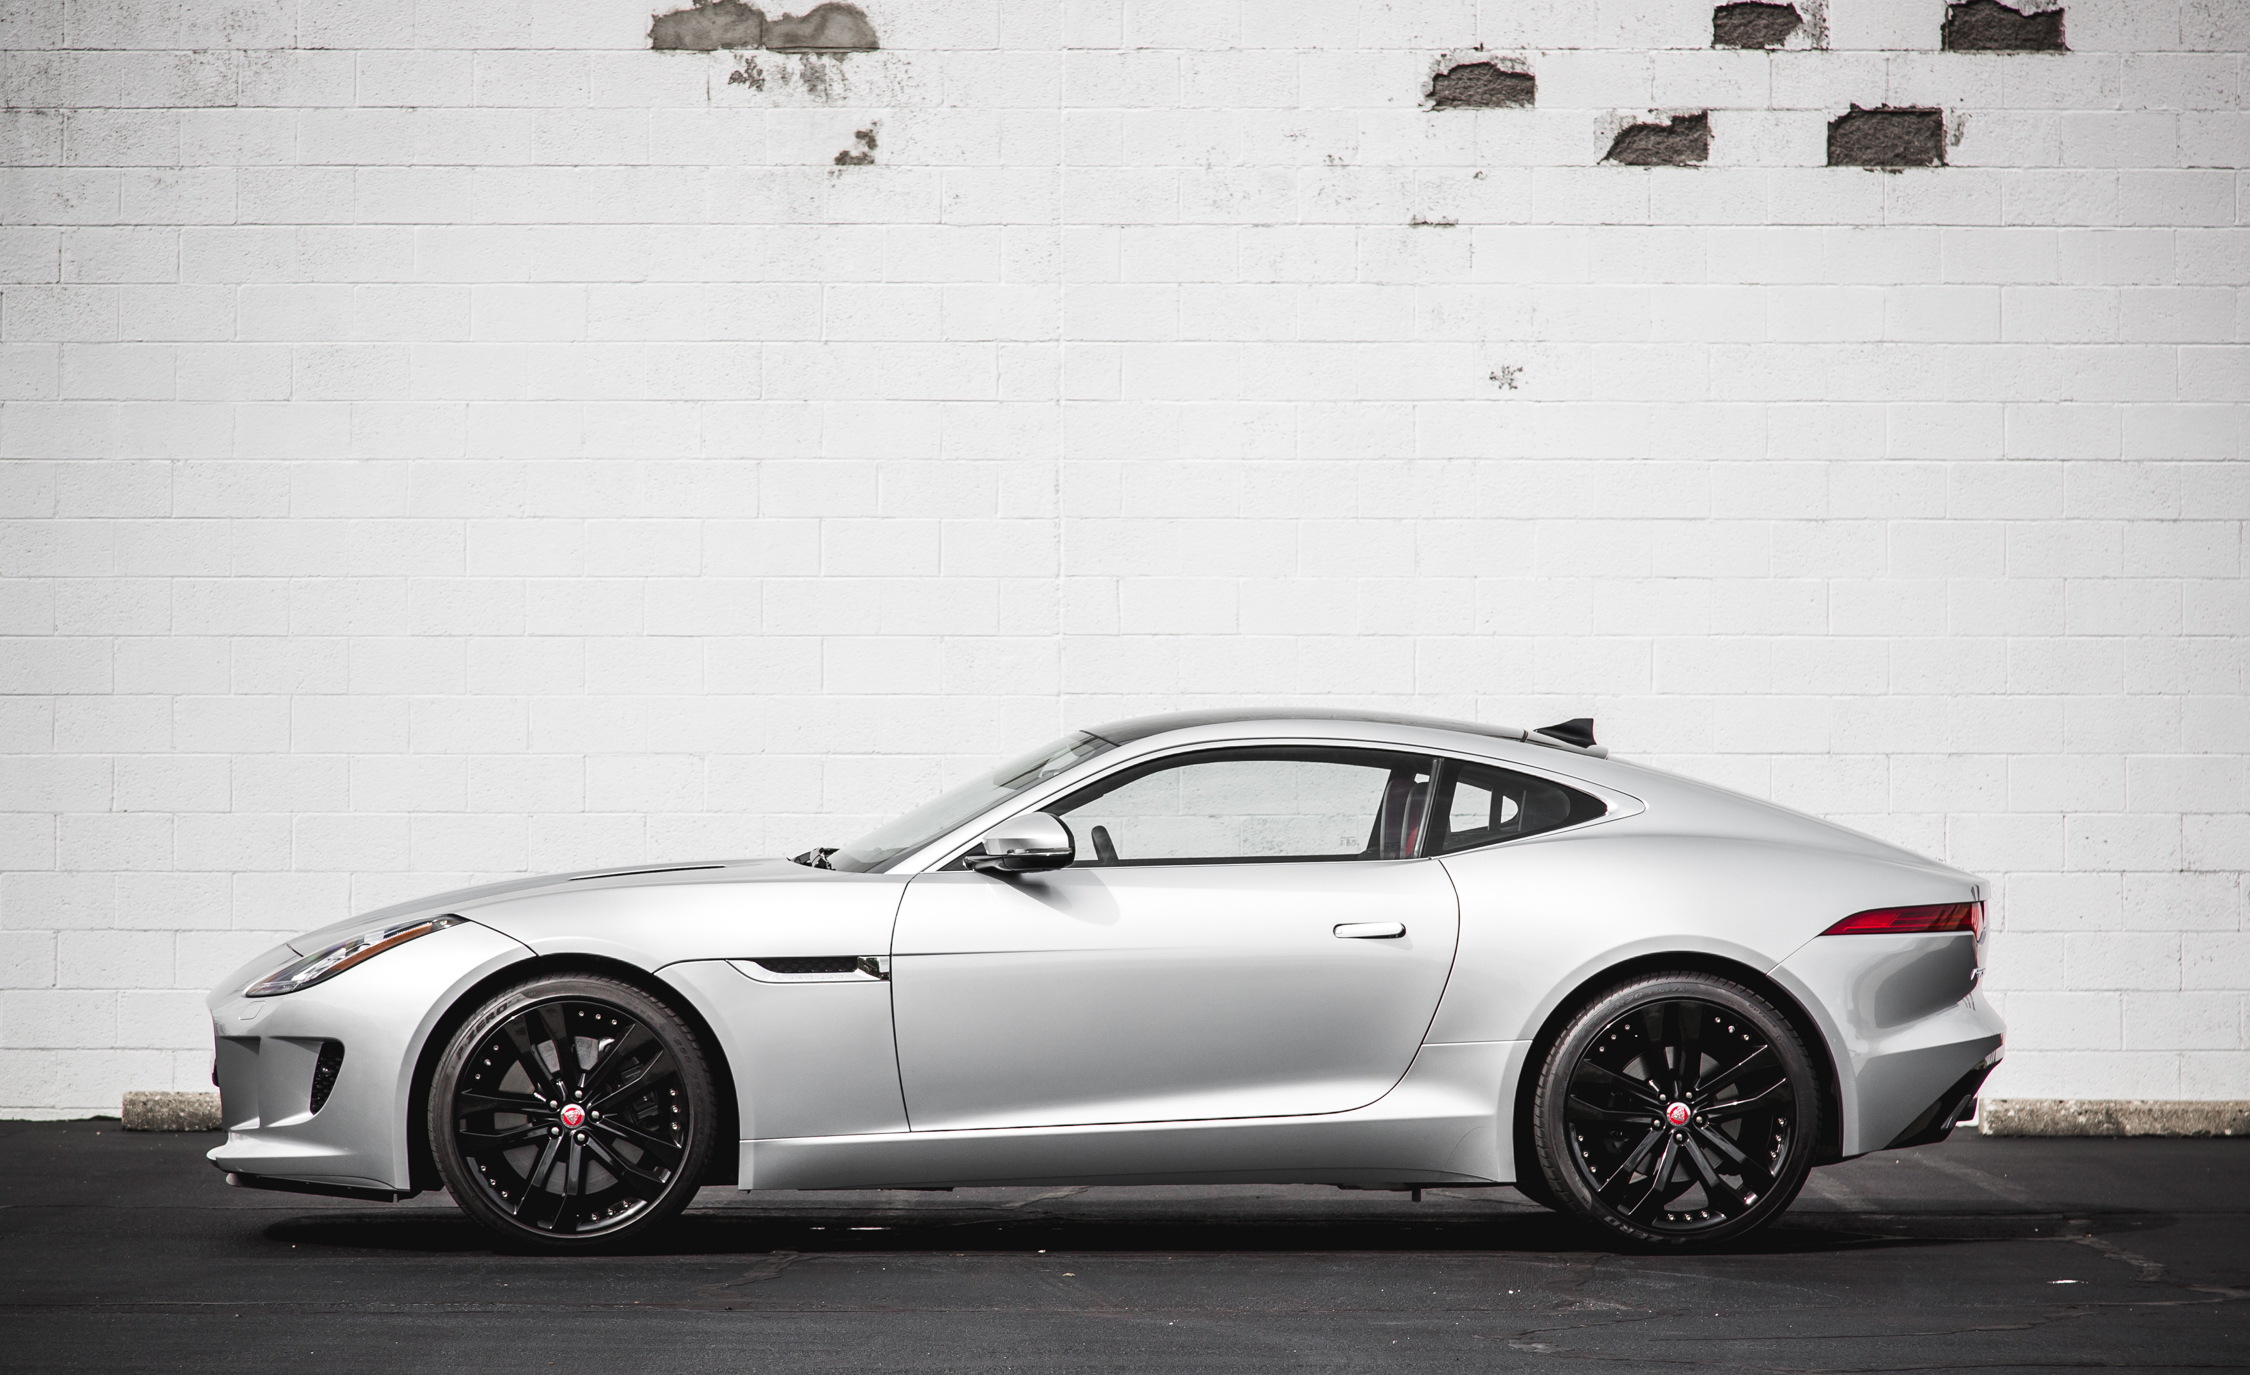 2016 Jaguar F Type V 6 S Coupe (Photo 9 of 23)